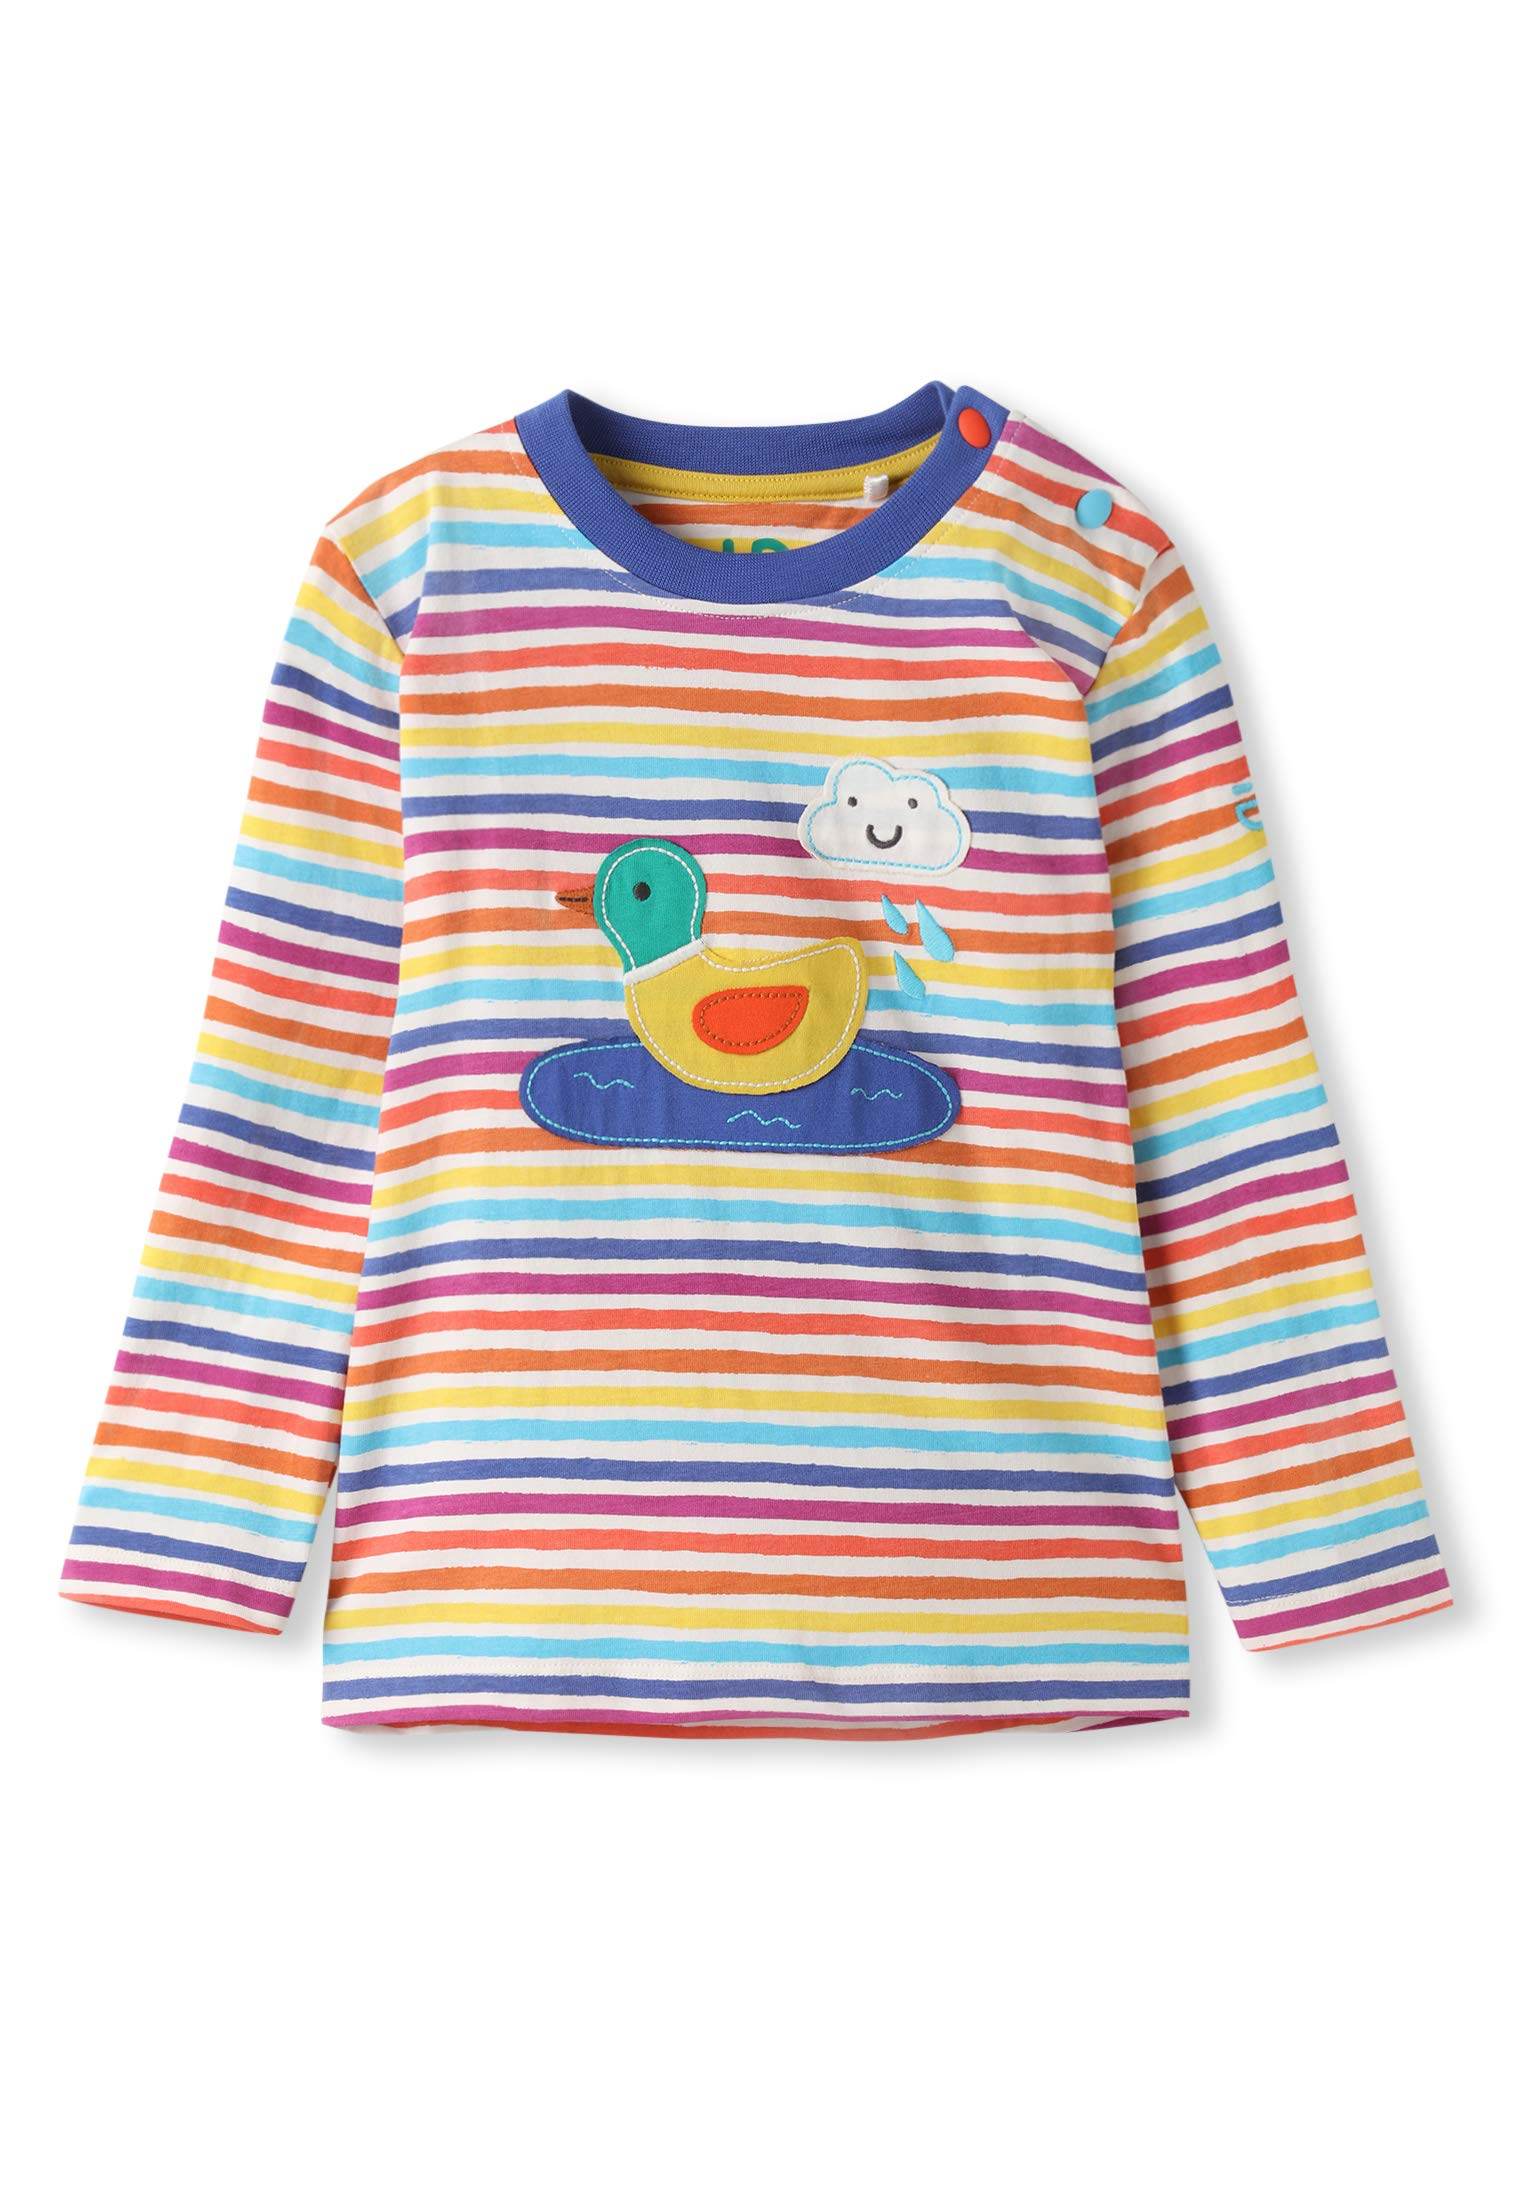 kIDio Organic Cotton Applique Baby Infant Toddler Long Sleeve Top - Duck Rainbow Stripes - Girl Boy Tee Shirt Blouse [24M (18-24 Months)] by kIDio